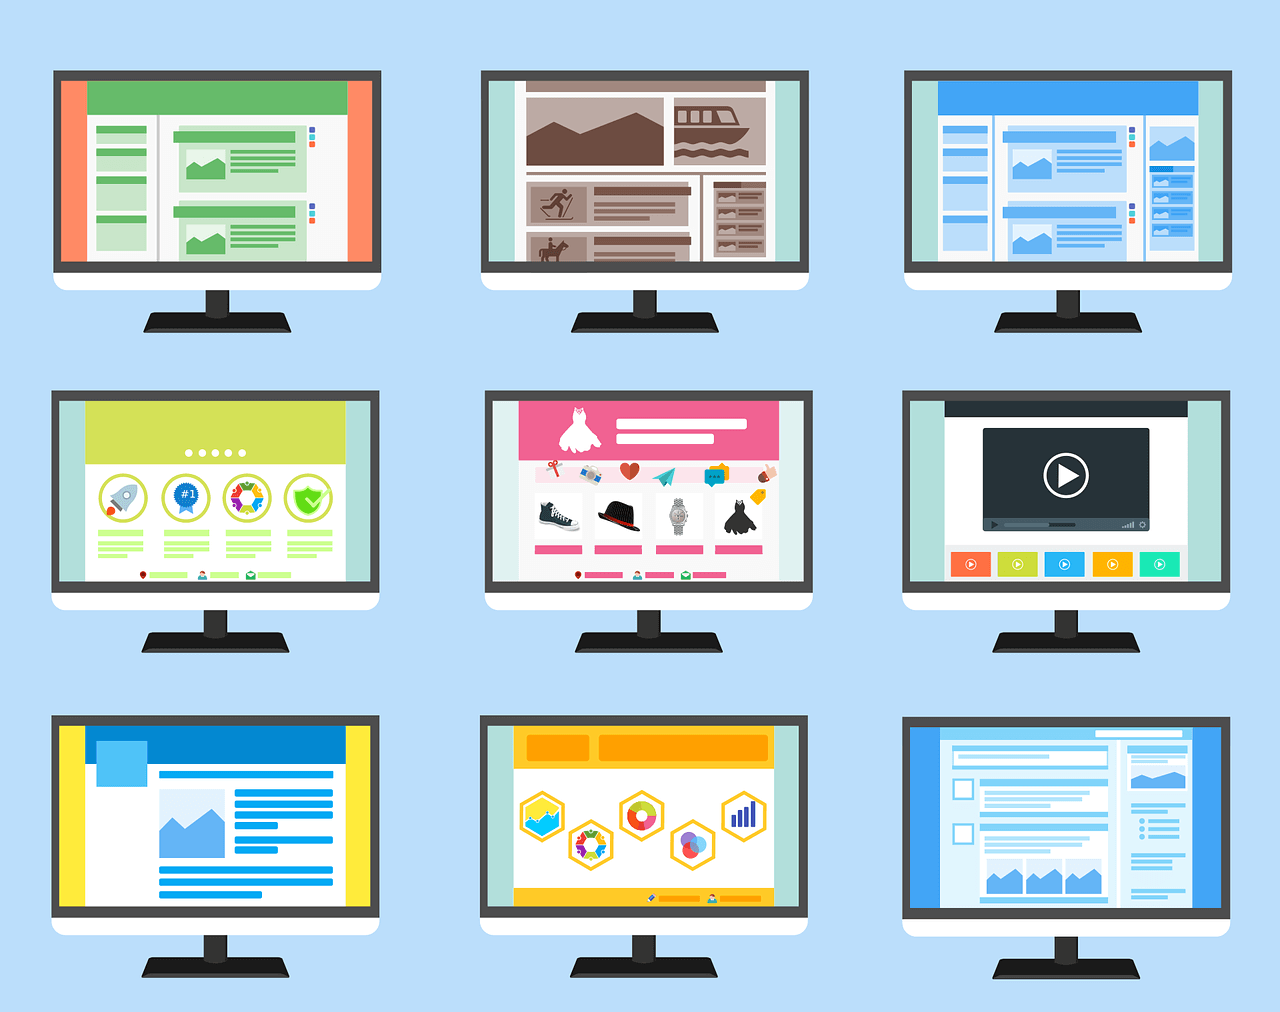 5 Important Things to Remember On a New Website